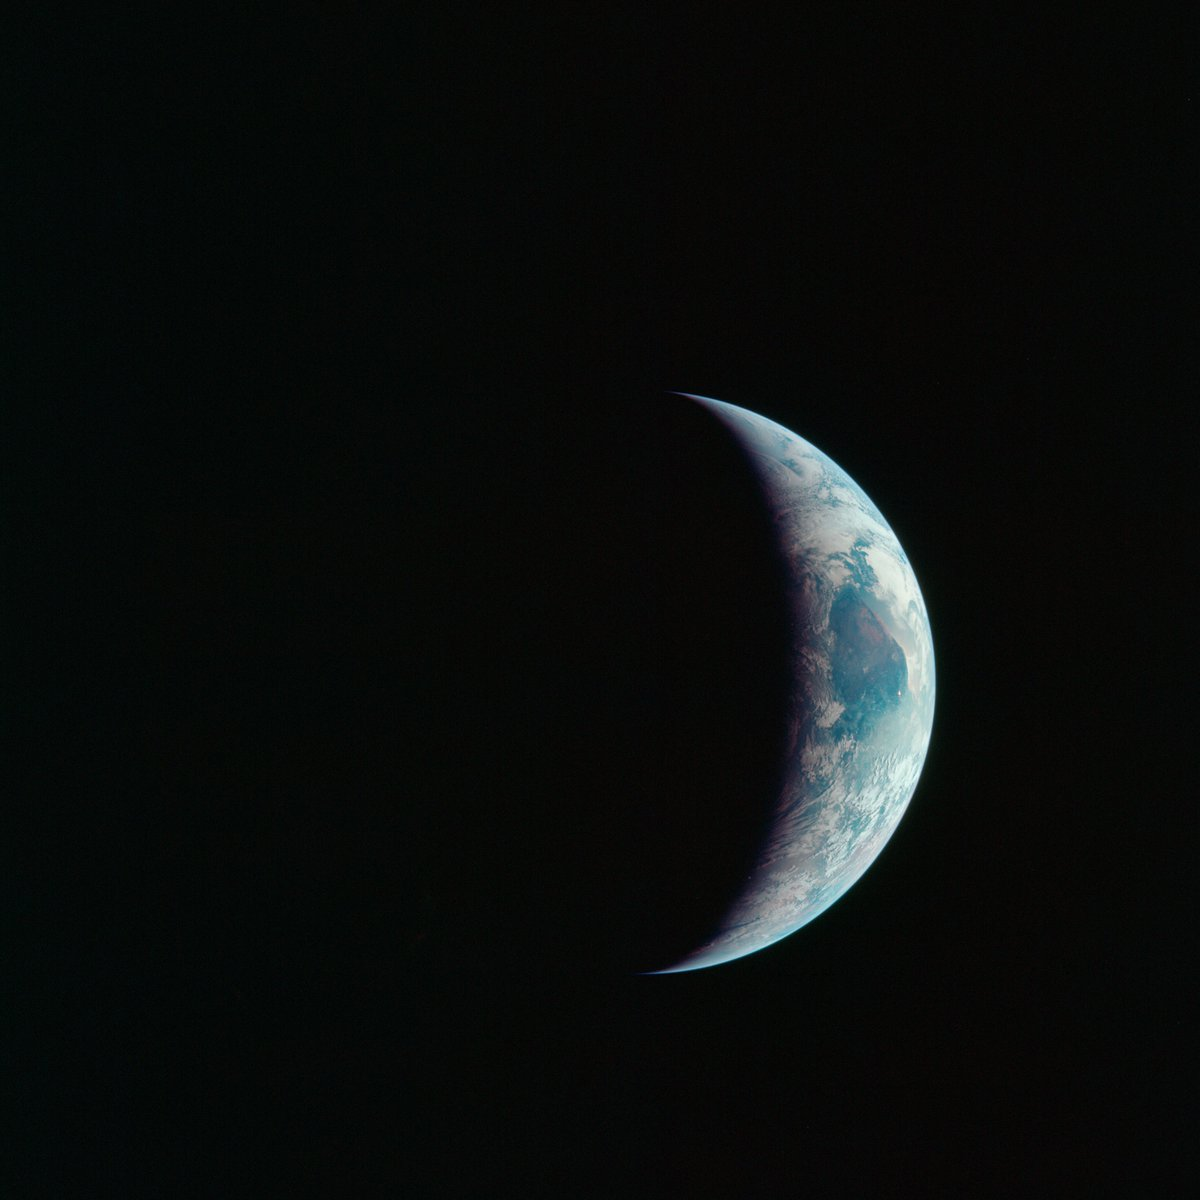 Start off your Saturday with this view of the Earth's sphere partly illuminated as photographed from the Apollo 11 spacecraft during its lunar landing mission. https://t.co/FwdHcN1X05